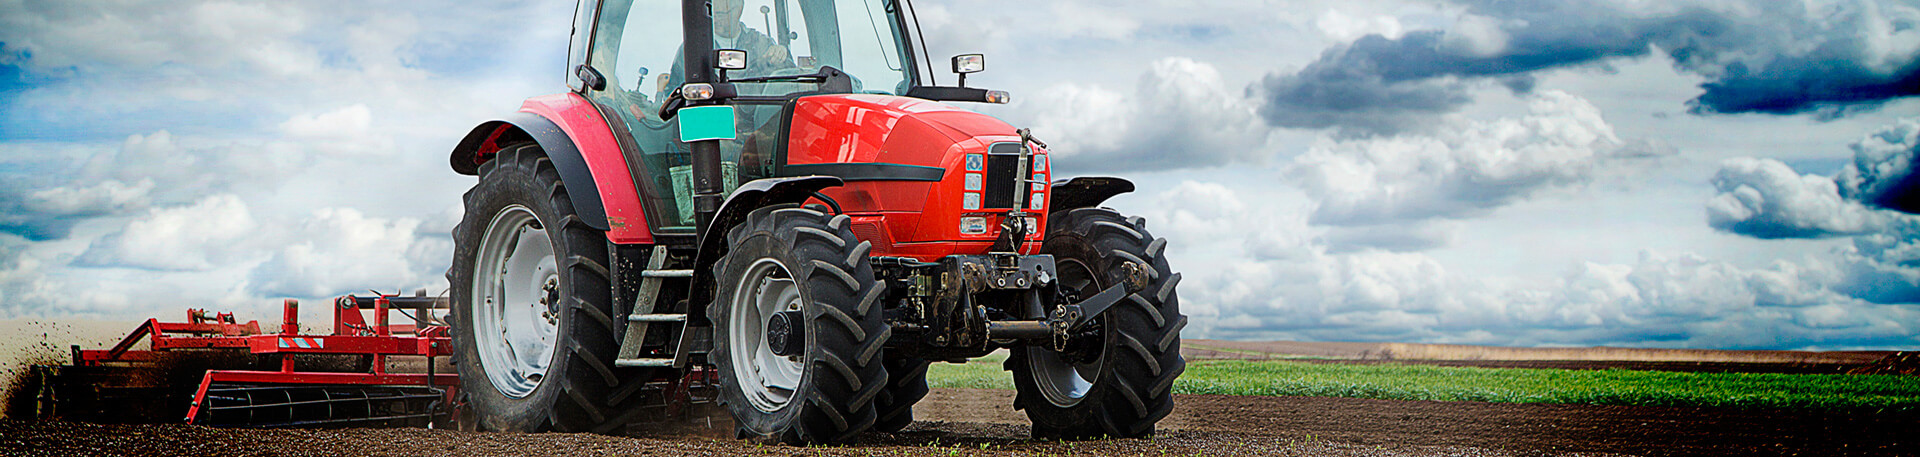 Concentric Engines - Agriculture